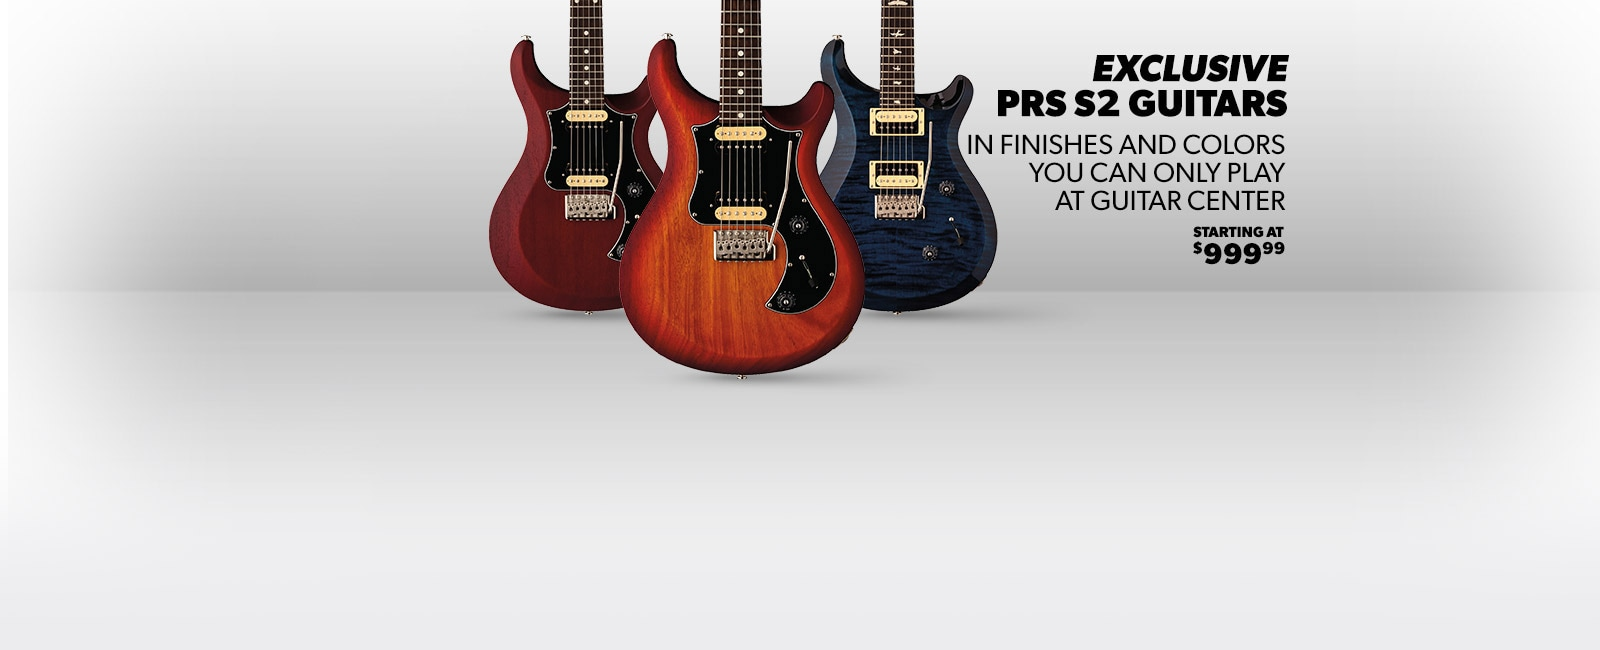 PRS S2 Exclusive